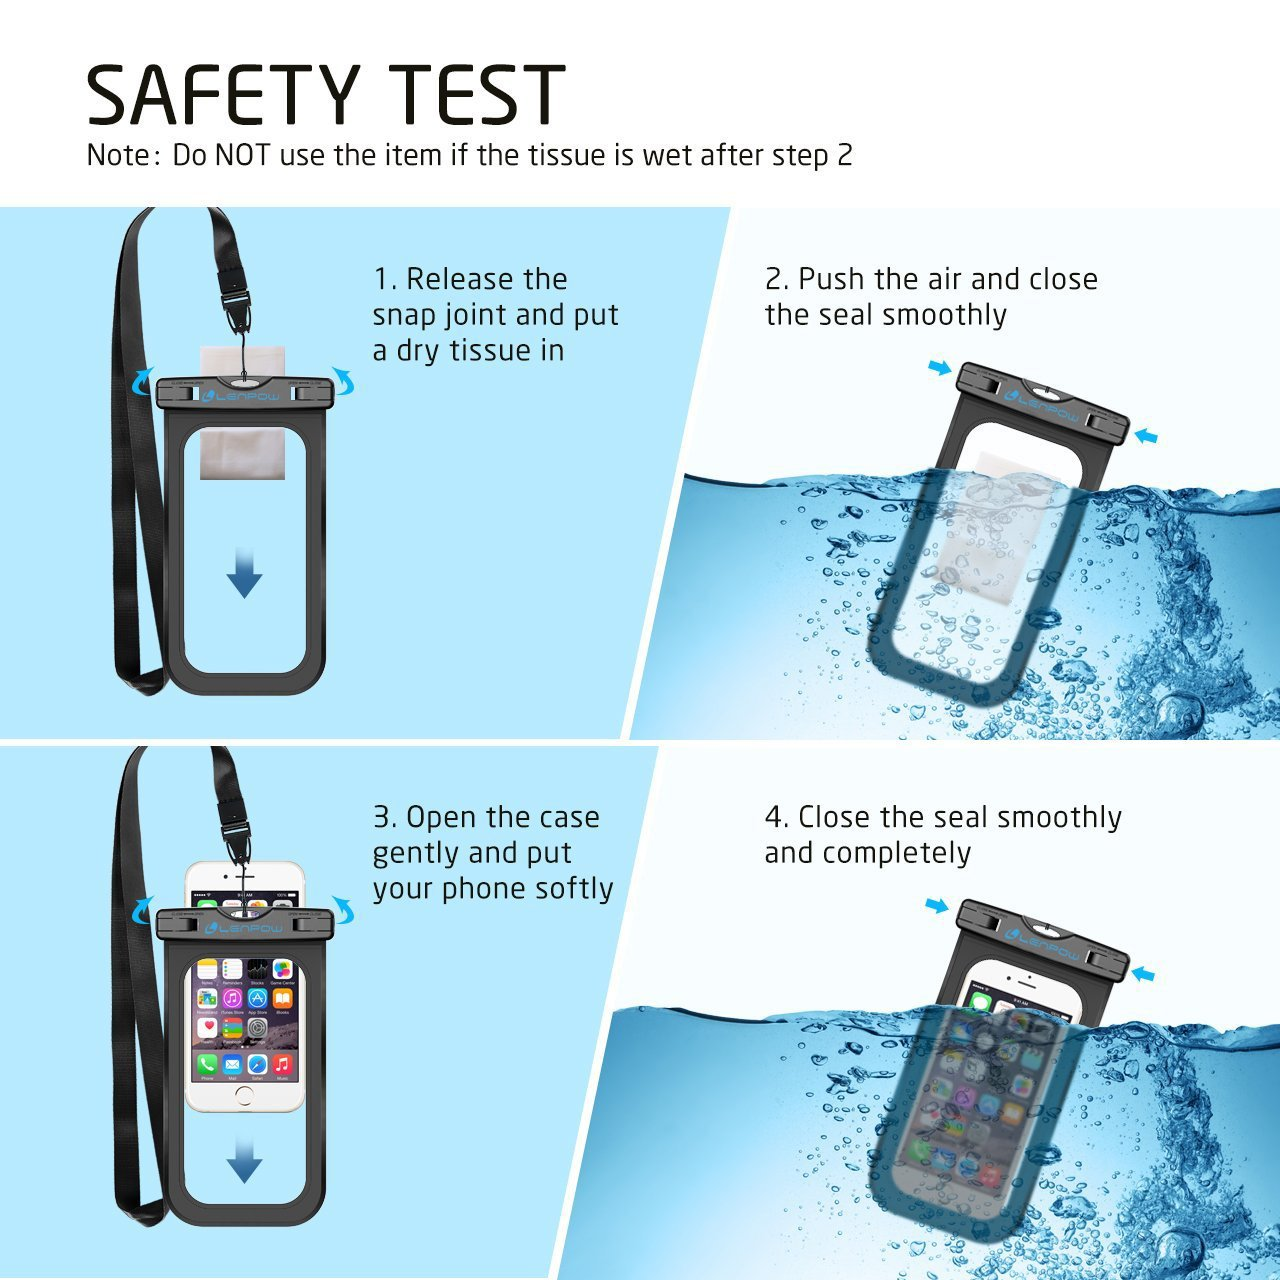 Firstbuy Universal Waterproof Case, 4 Pack waterproof phone pouch IPX8 Dry Bag For iPhone 8/7/7 Plus/6S/6/6S Plus/SE/5S, Samsung Galaxy S9 S8/S8 +/Note 6 5 4, Google Pixel 2 HTC LG Sony MOTO.